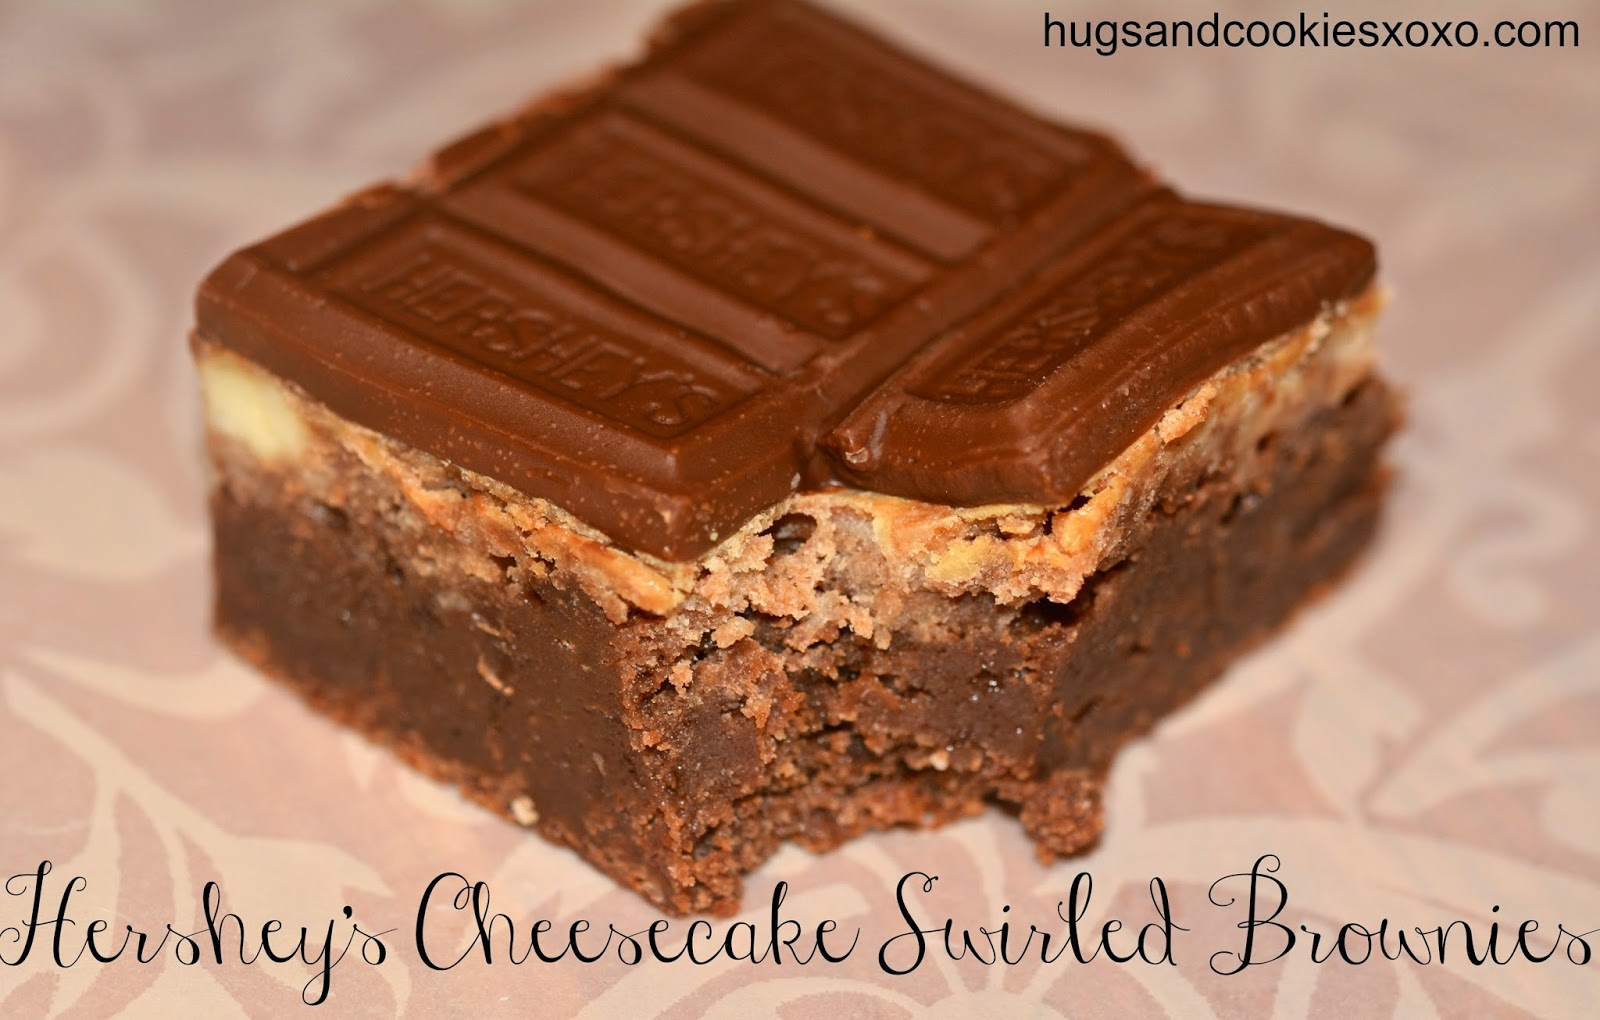 HERSHEY MARBLED CHEESECAKE BROWNIE BARS!!! - Hugs and Cookies XOXO